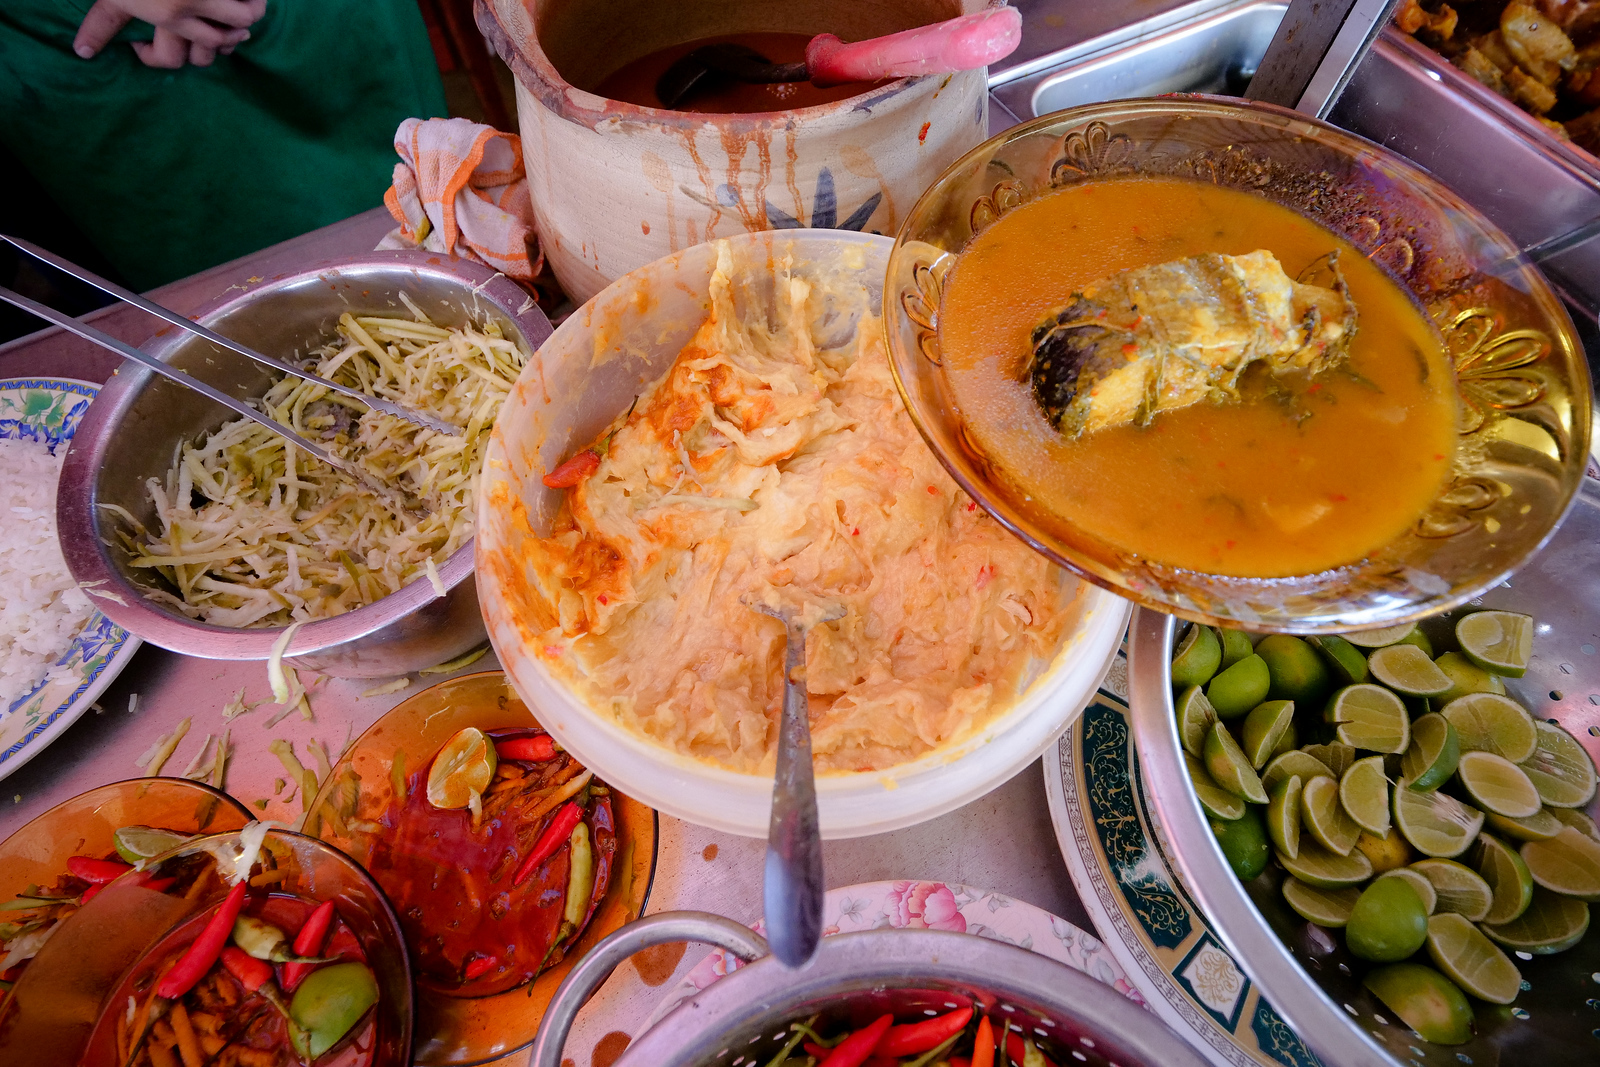 One of the most delicious condiments the world has ever seen, Tempoyak is only made even better when stirred into a sour, salty, dish of budu and chili